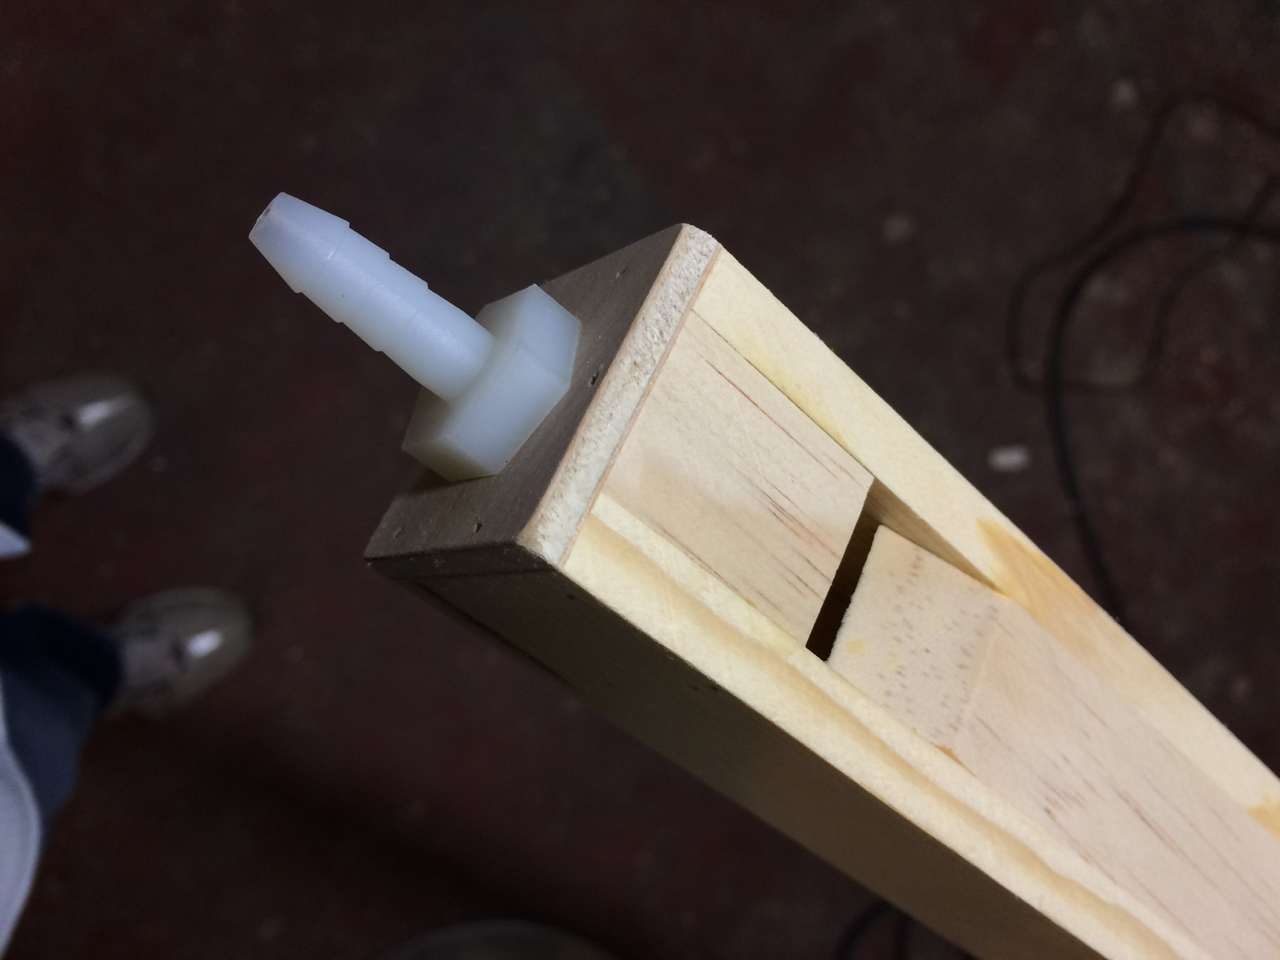 Flute when fully assembled